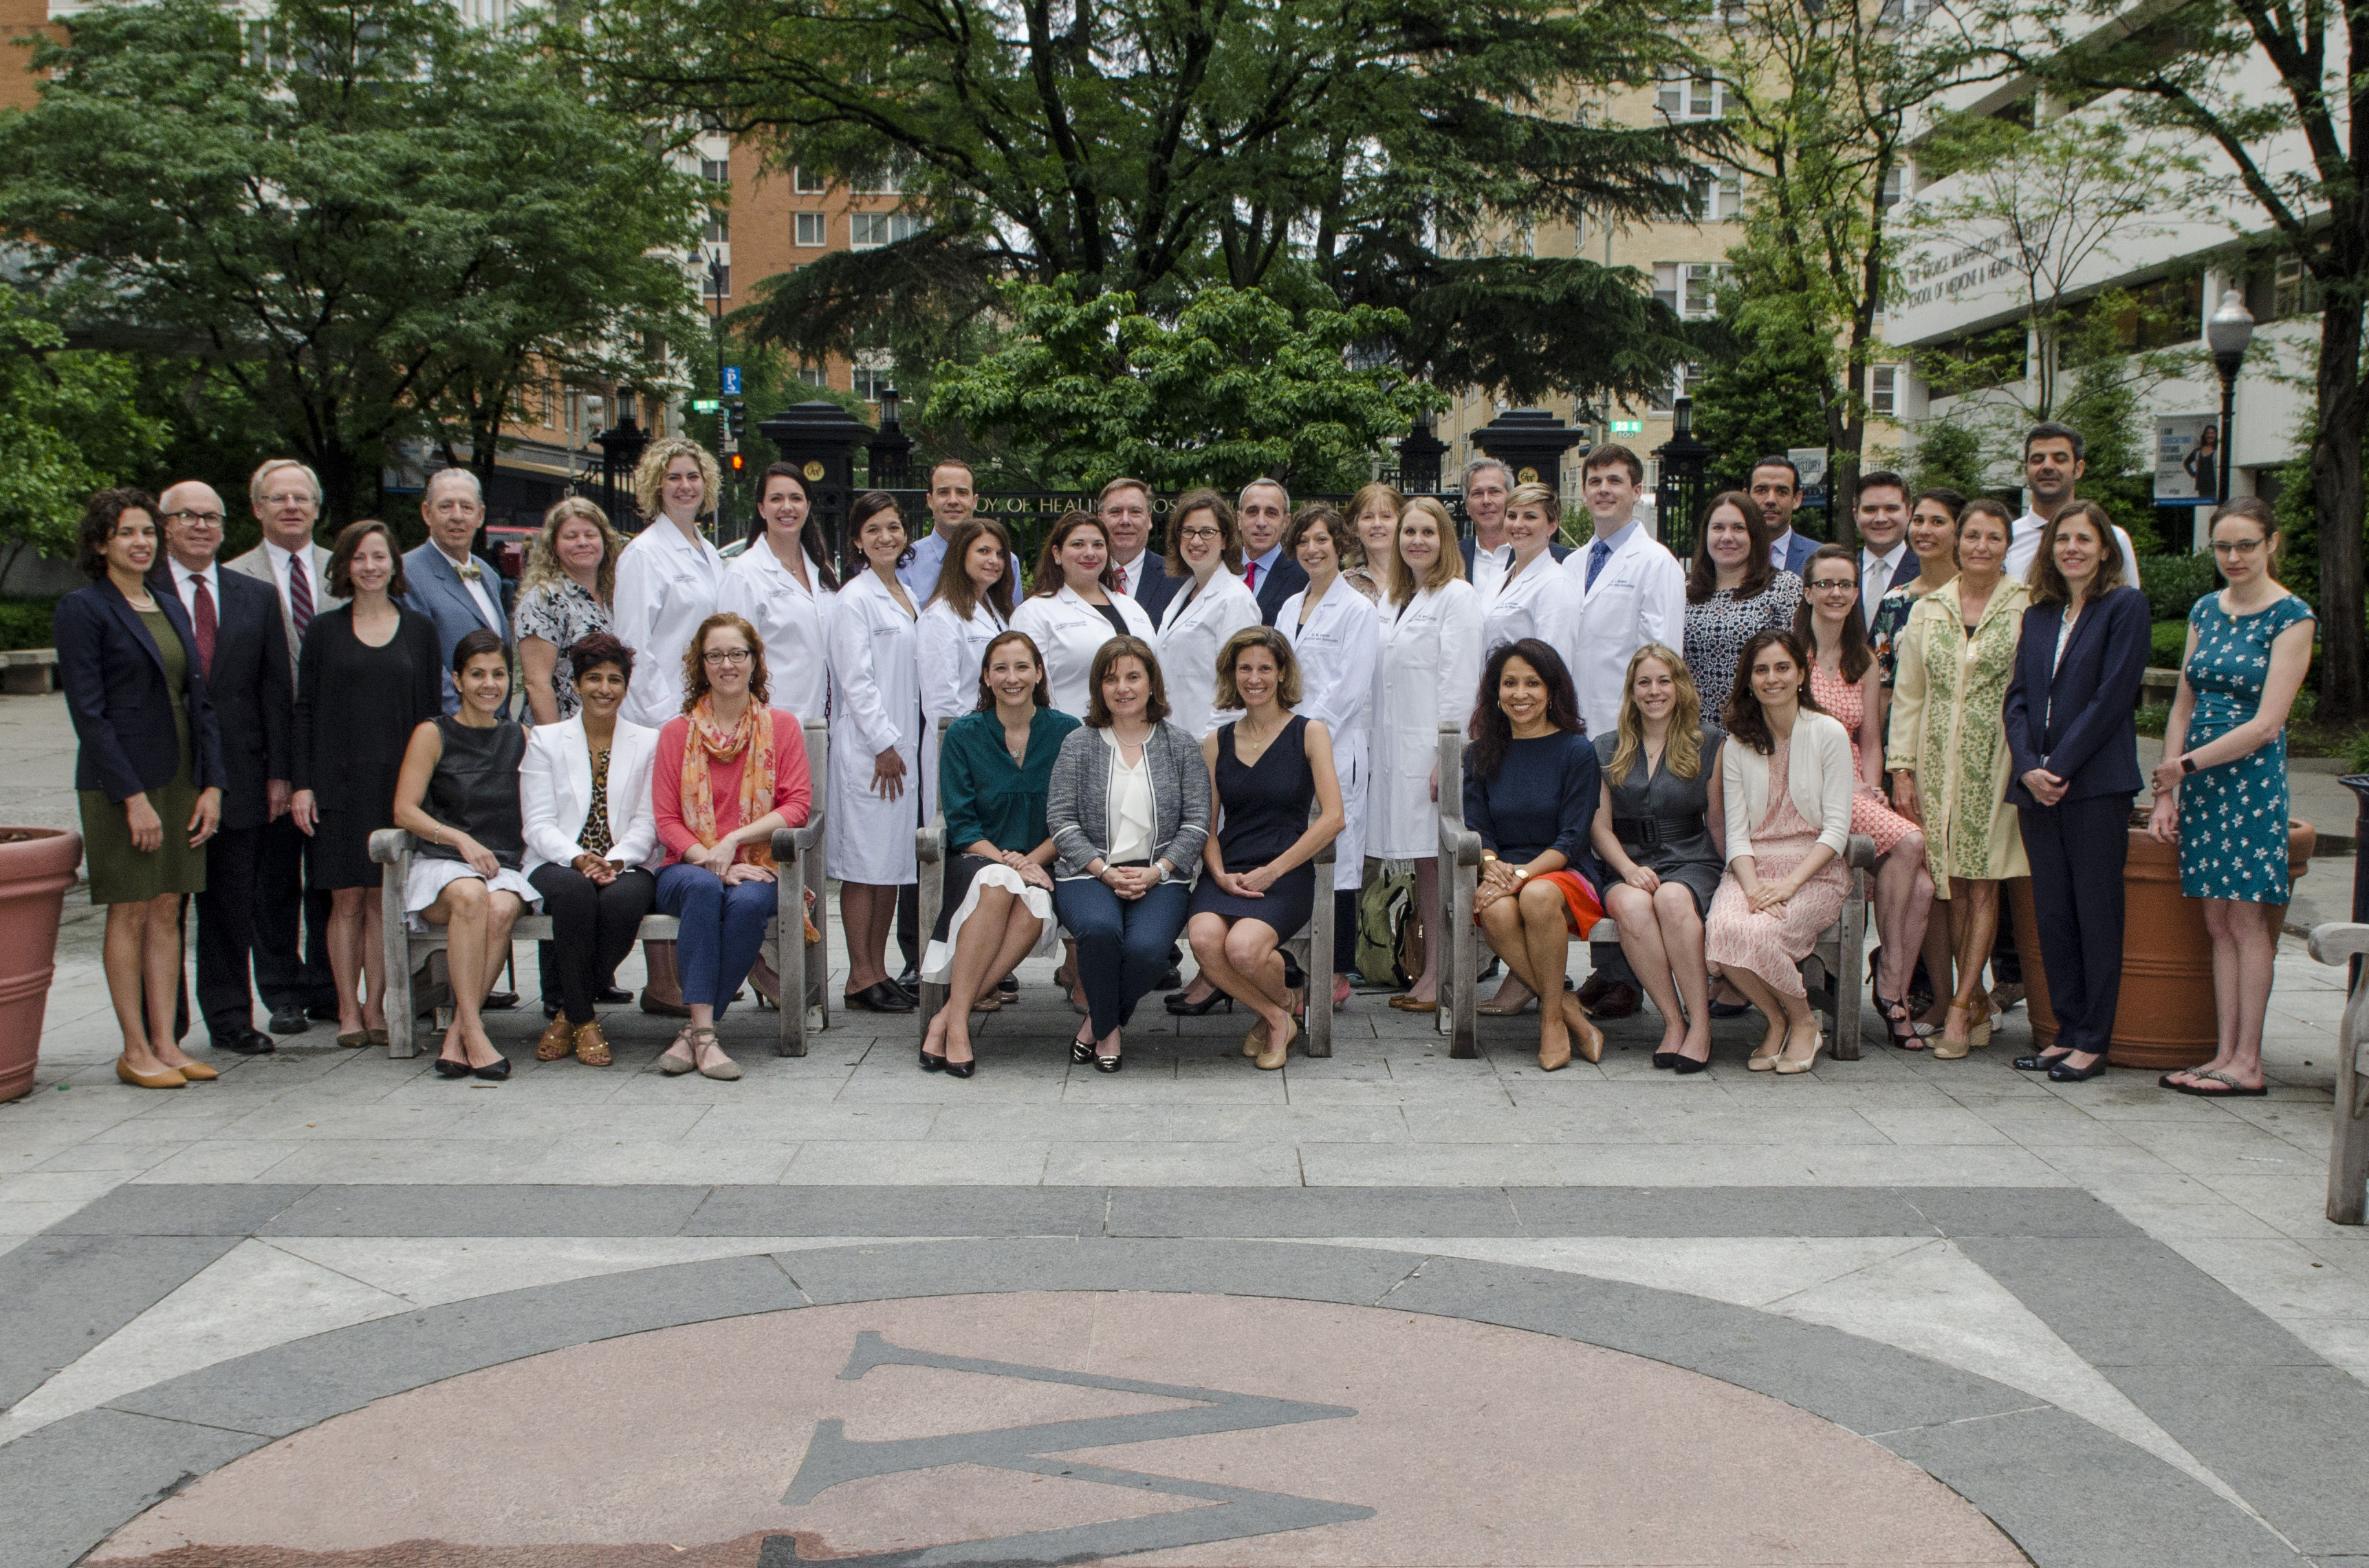 The 2017 Class of OB/GYN Residents